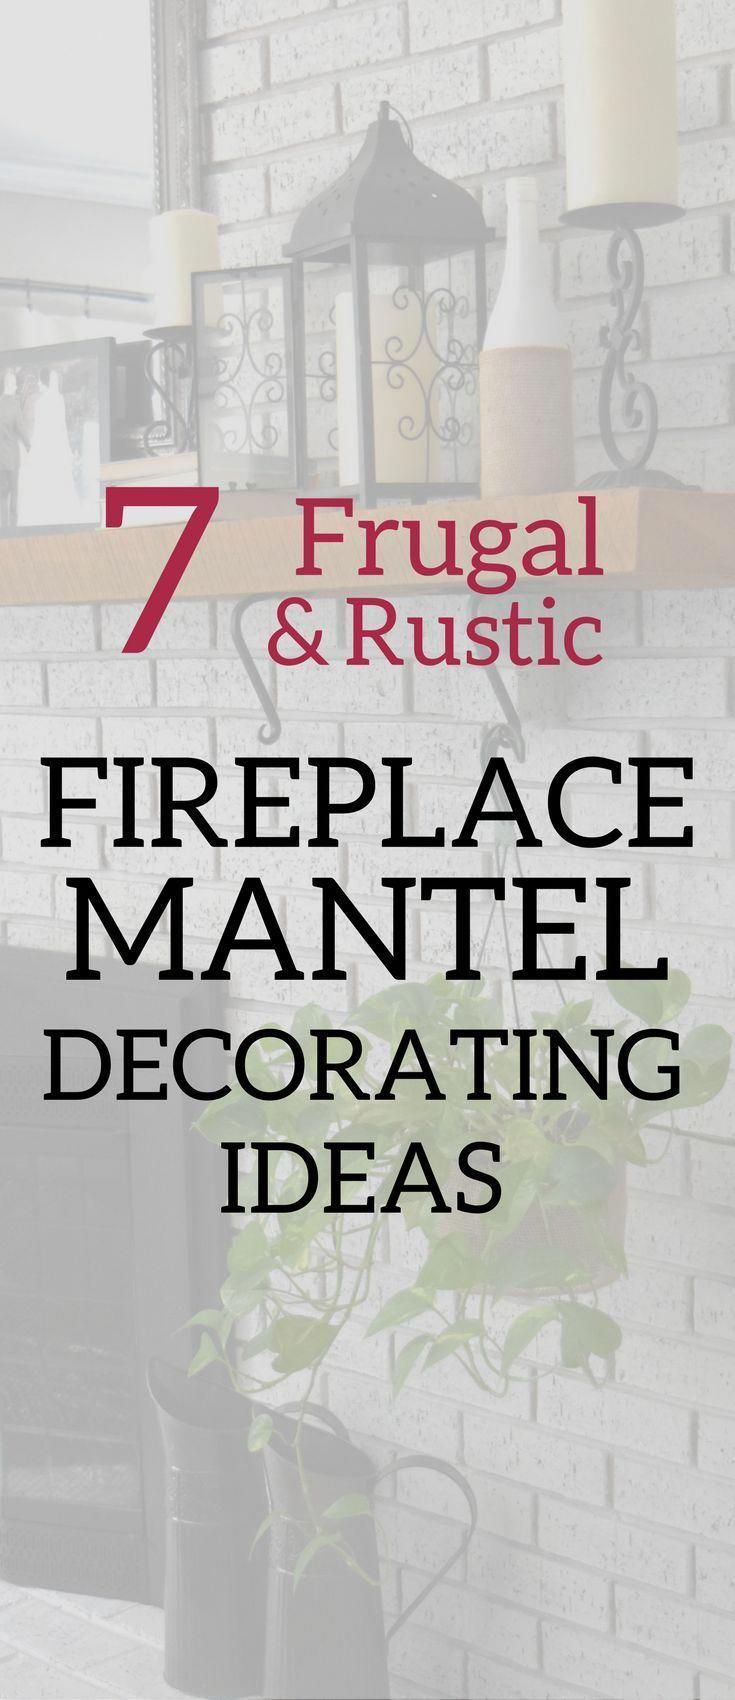 7 Frugal & Rustic Fireplace Mantel Decorating Ideas images